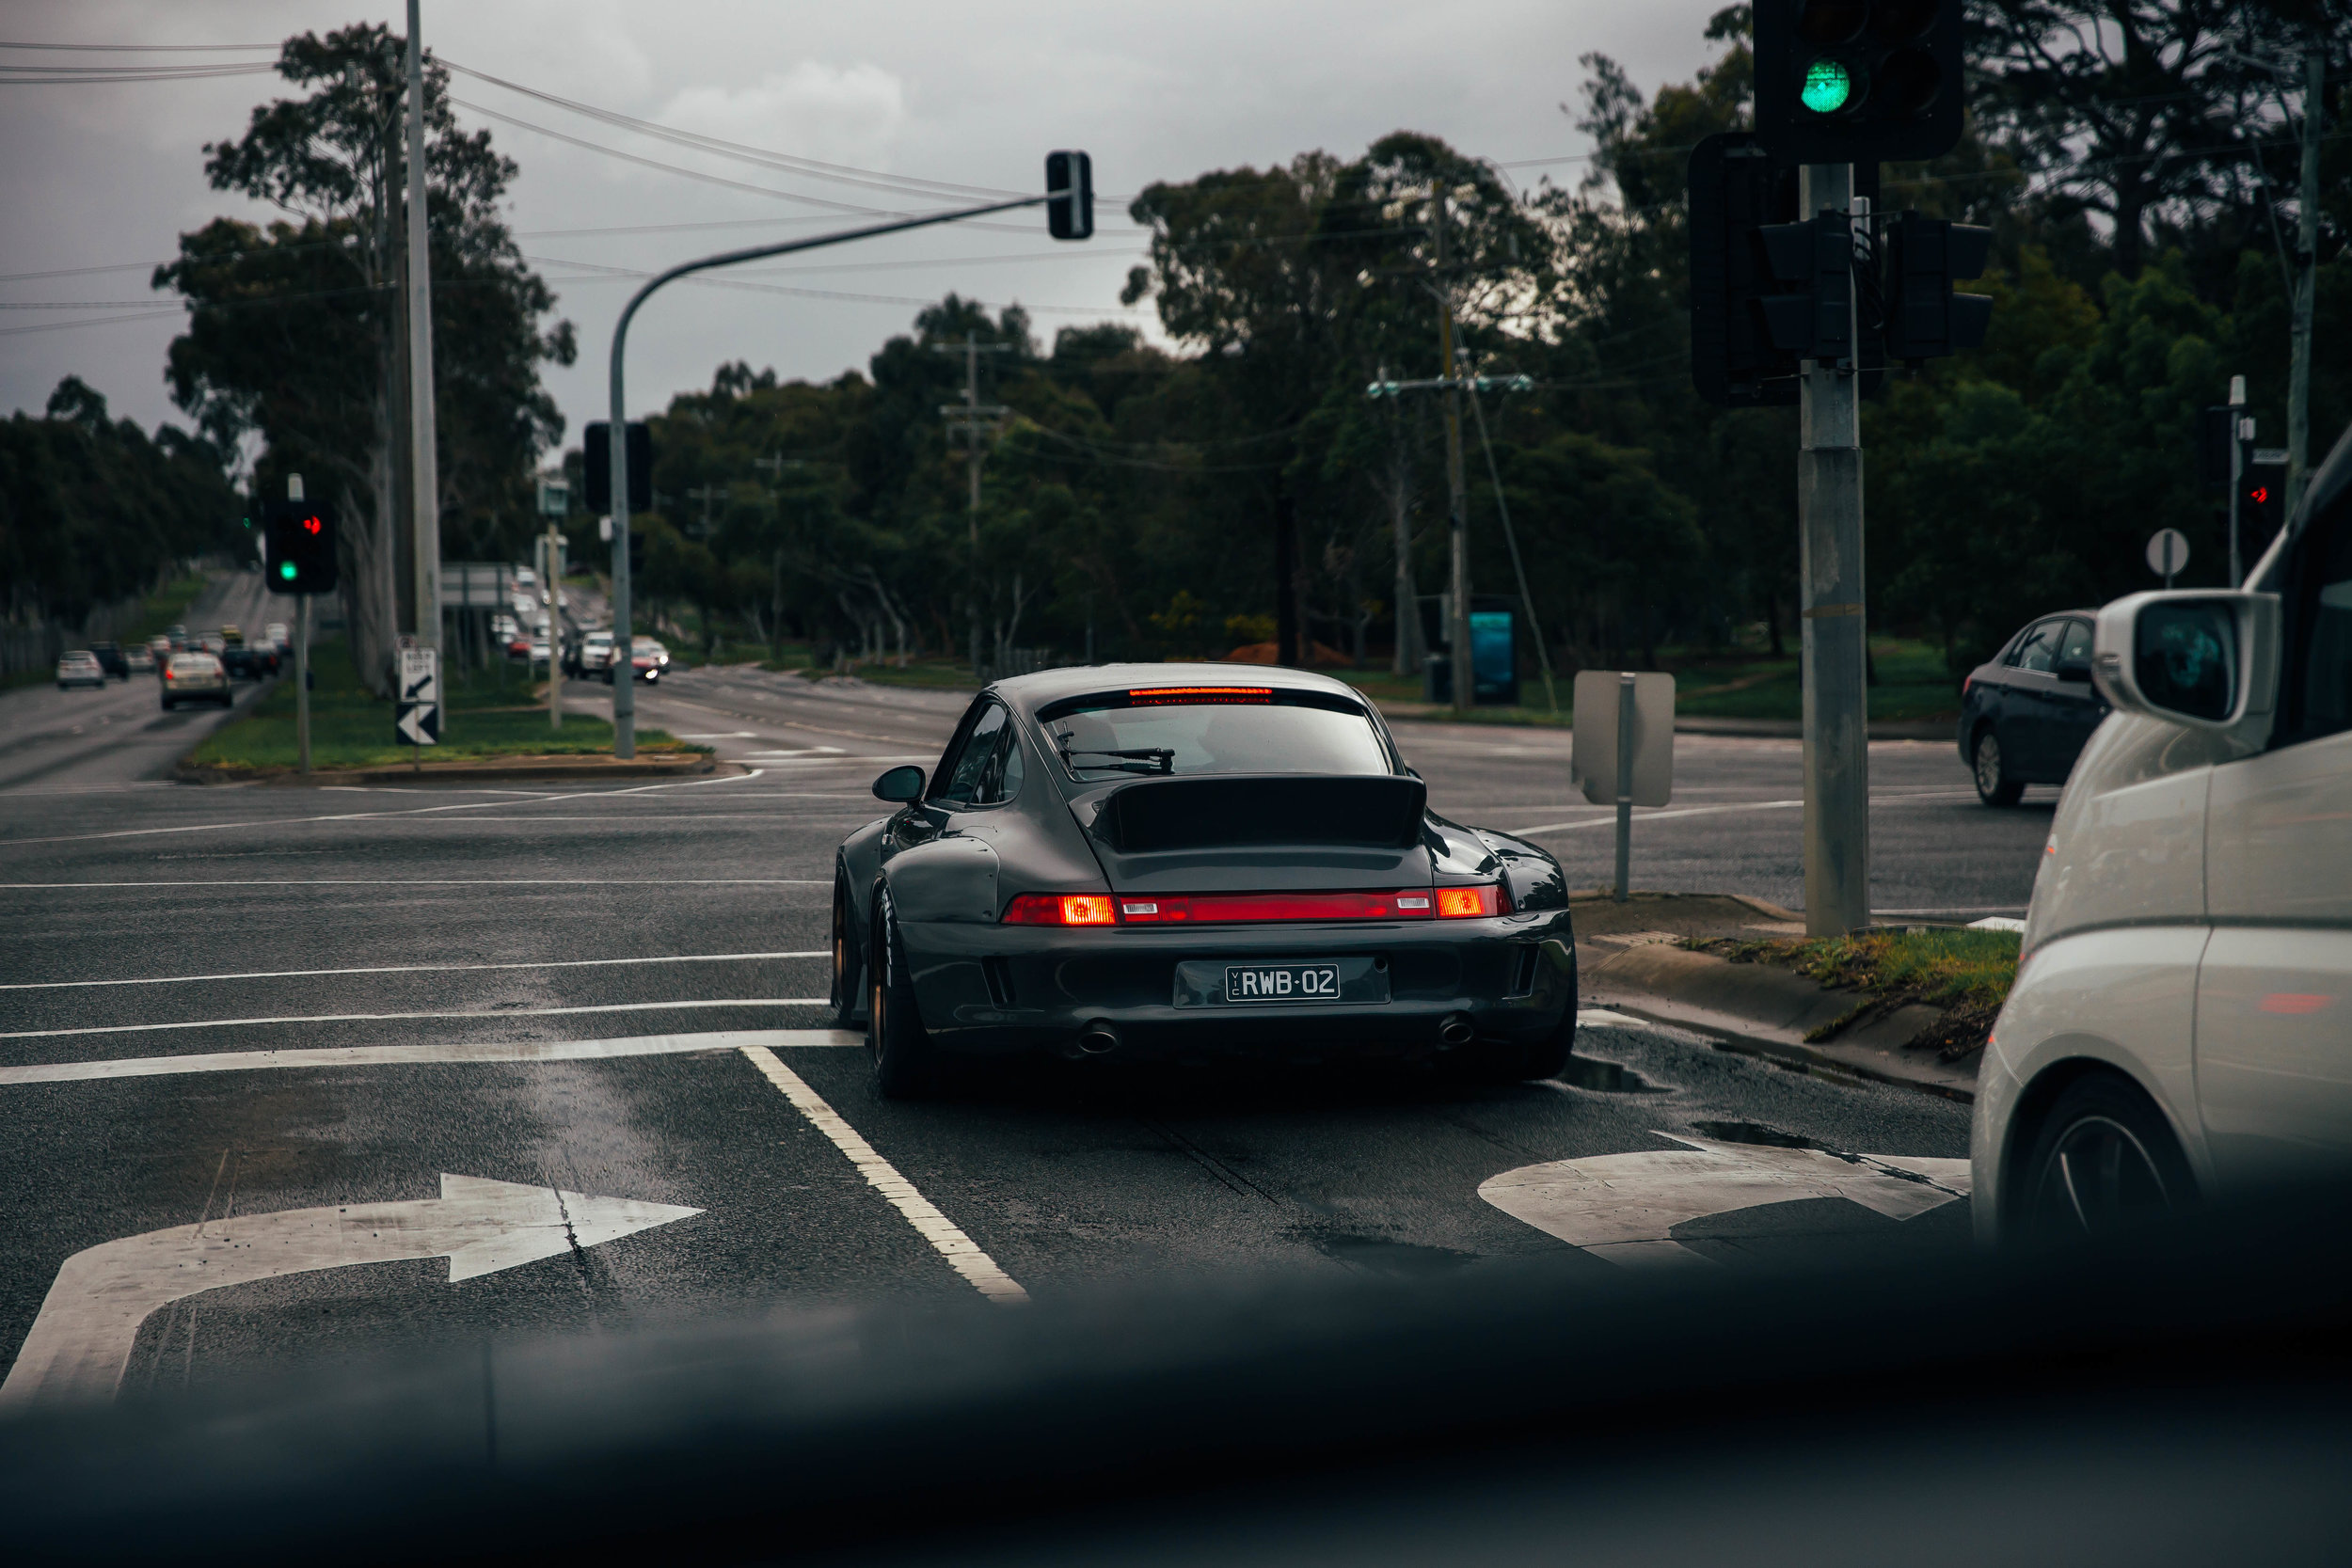 Following 'Chigiri'the second RWB in Australia after the build was complete in Melbourne. The amount of looks we got was insane, and I got to go for a drive in it shortly after this was taken.